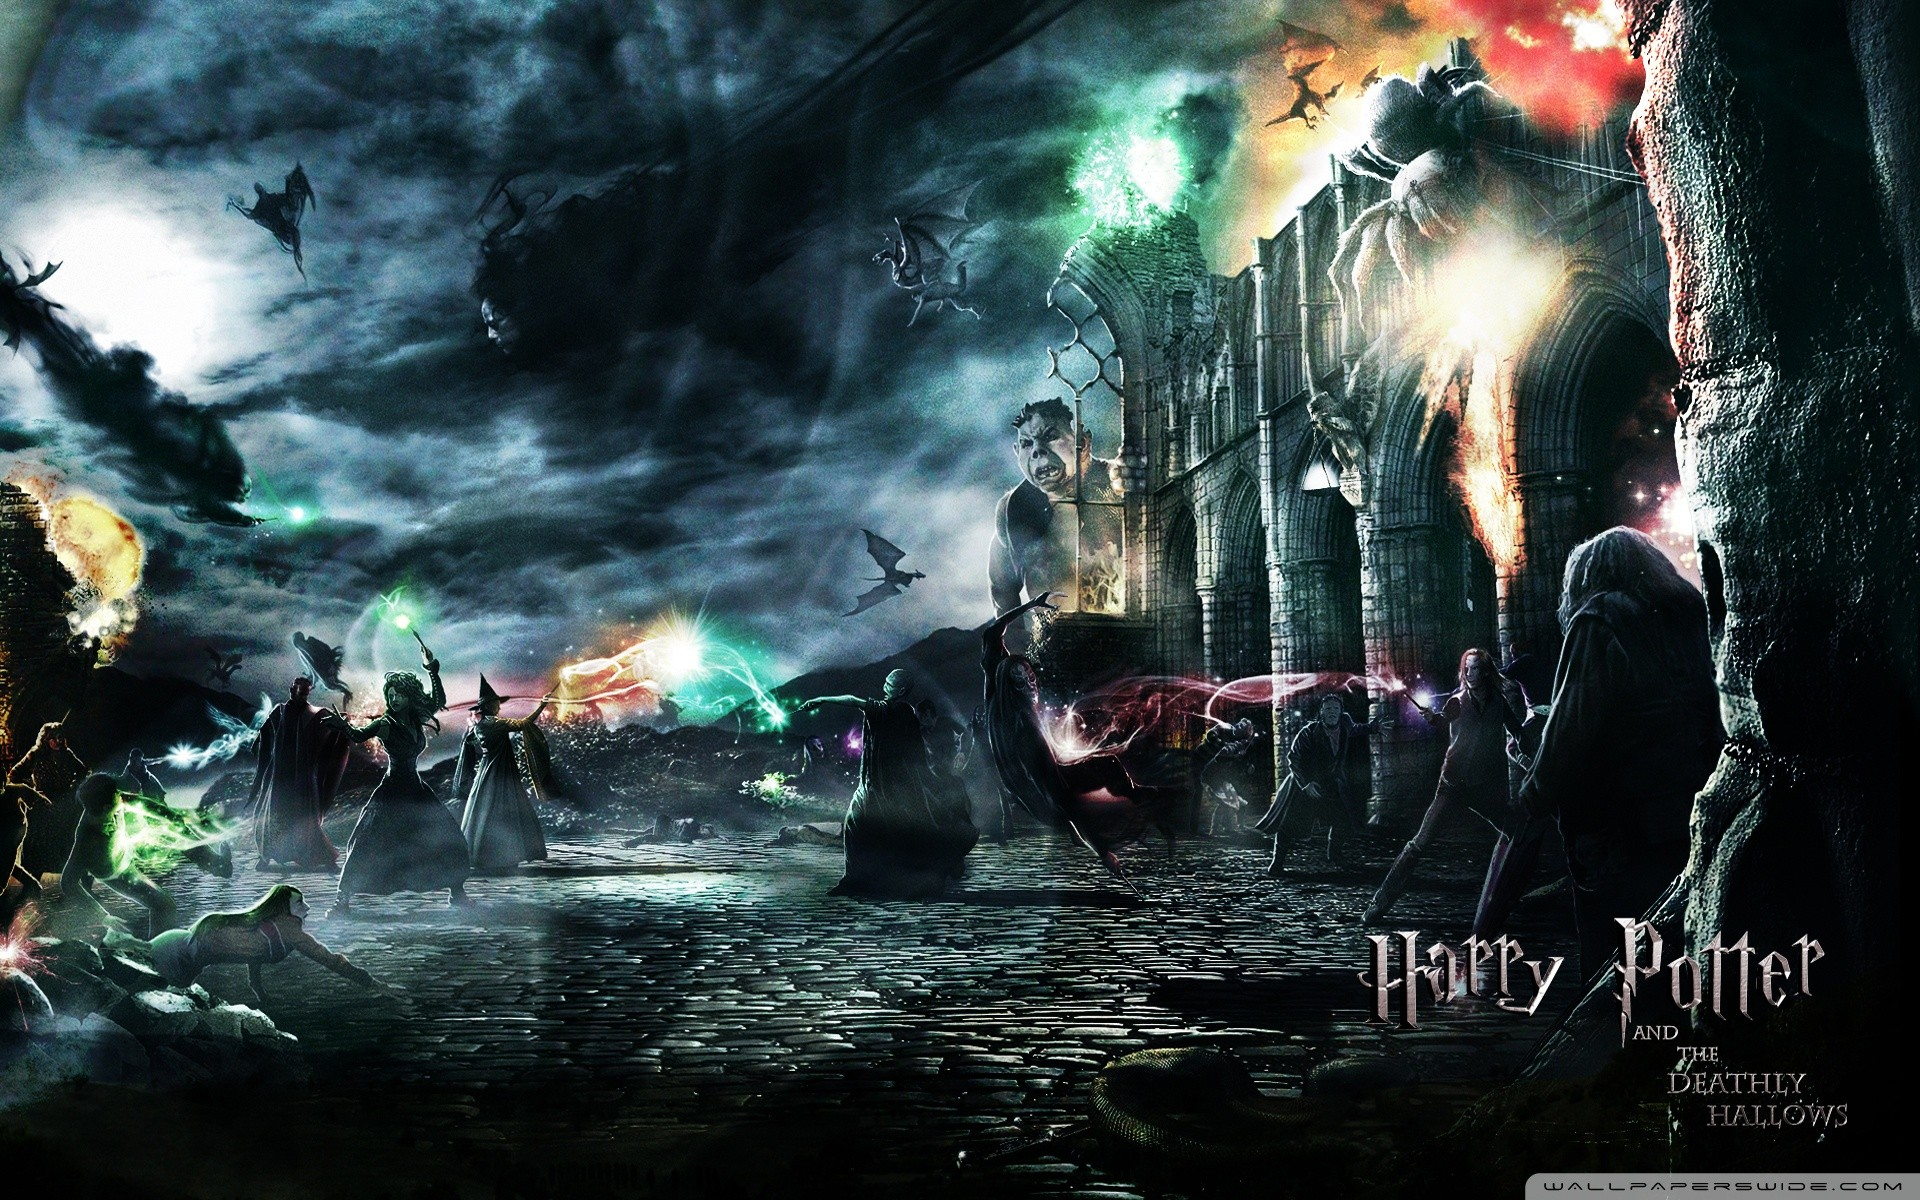 47 Harry Potter Wallpapers Download Free Stunning Wallpapers For Desktop Computers And Smartphones In Any Resolution Desktop Android Iphone Ipad 1920x1080 480x800 720x1280 1920x1200 Etc Wallpapertag